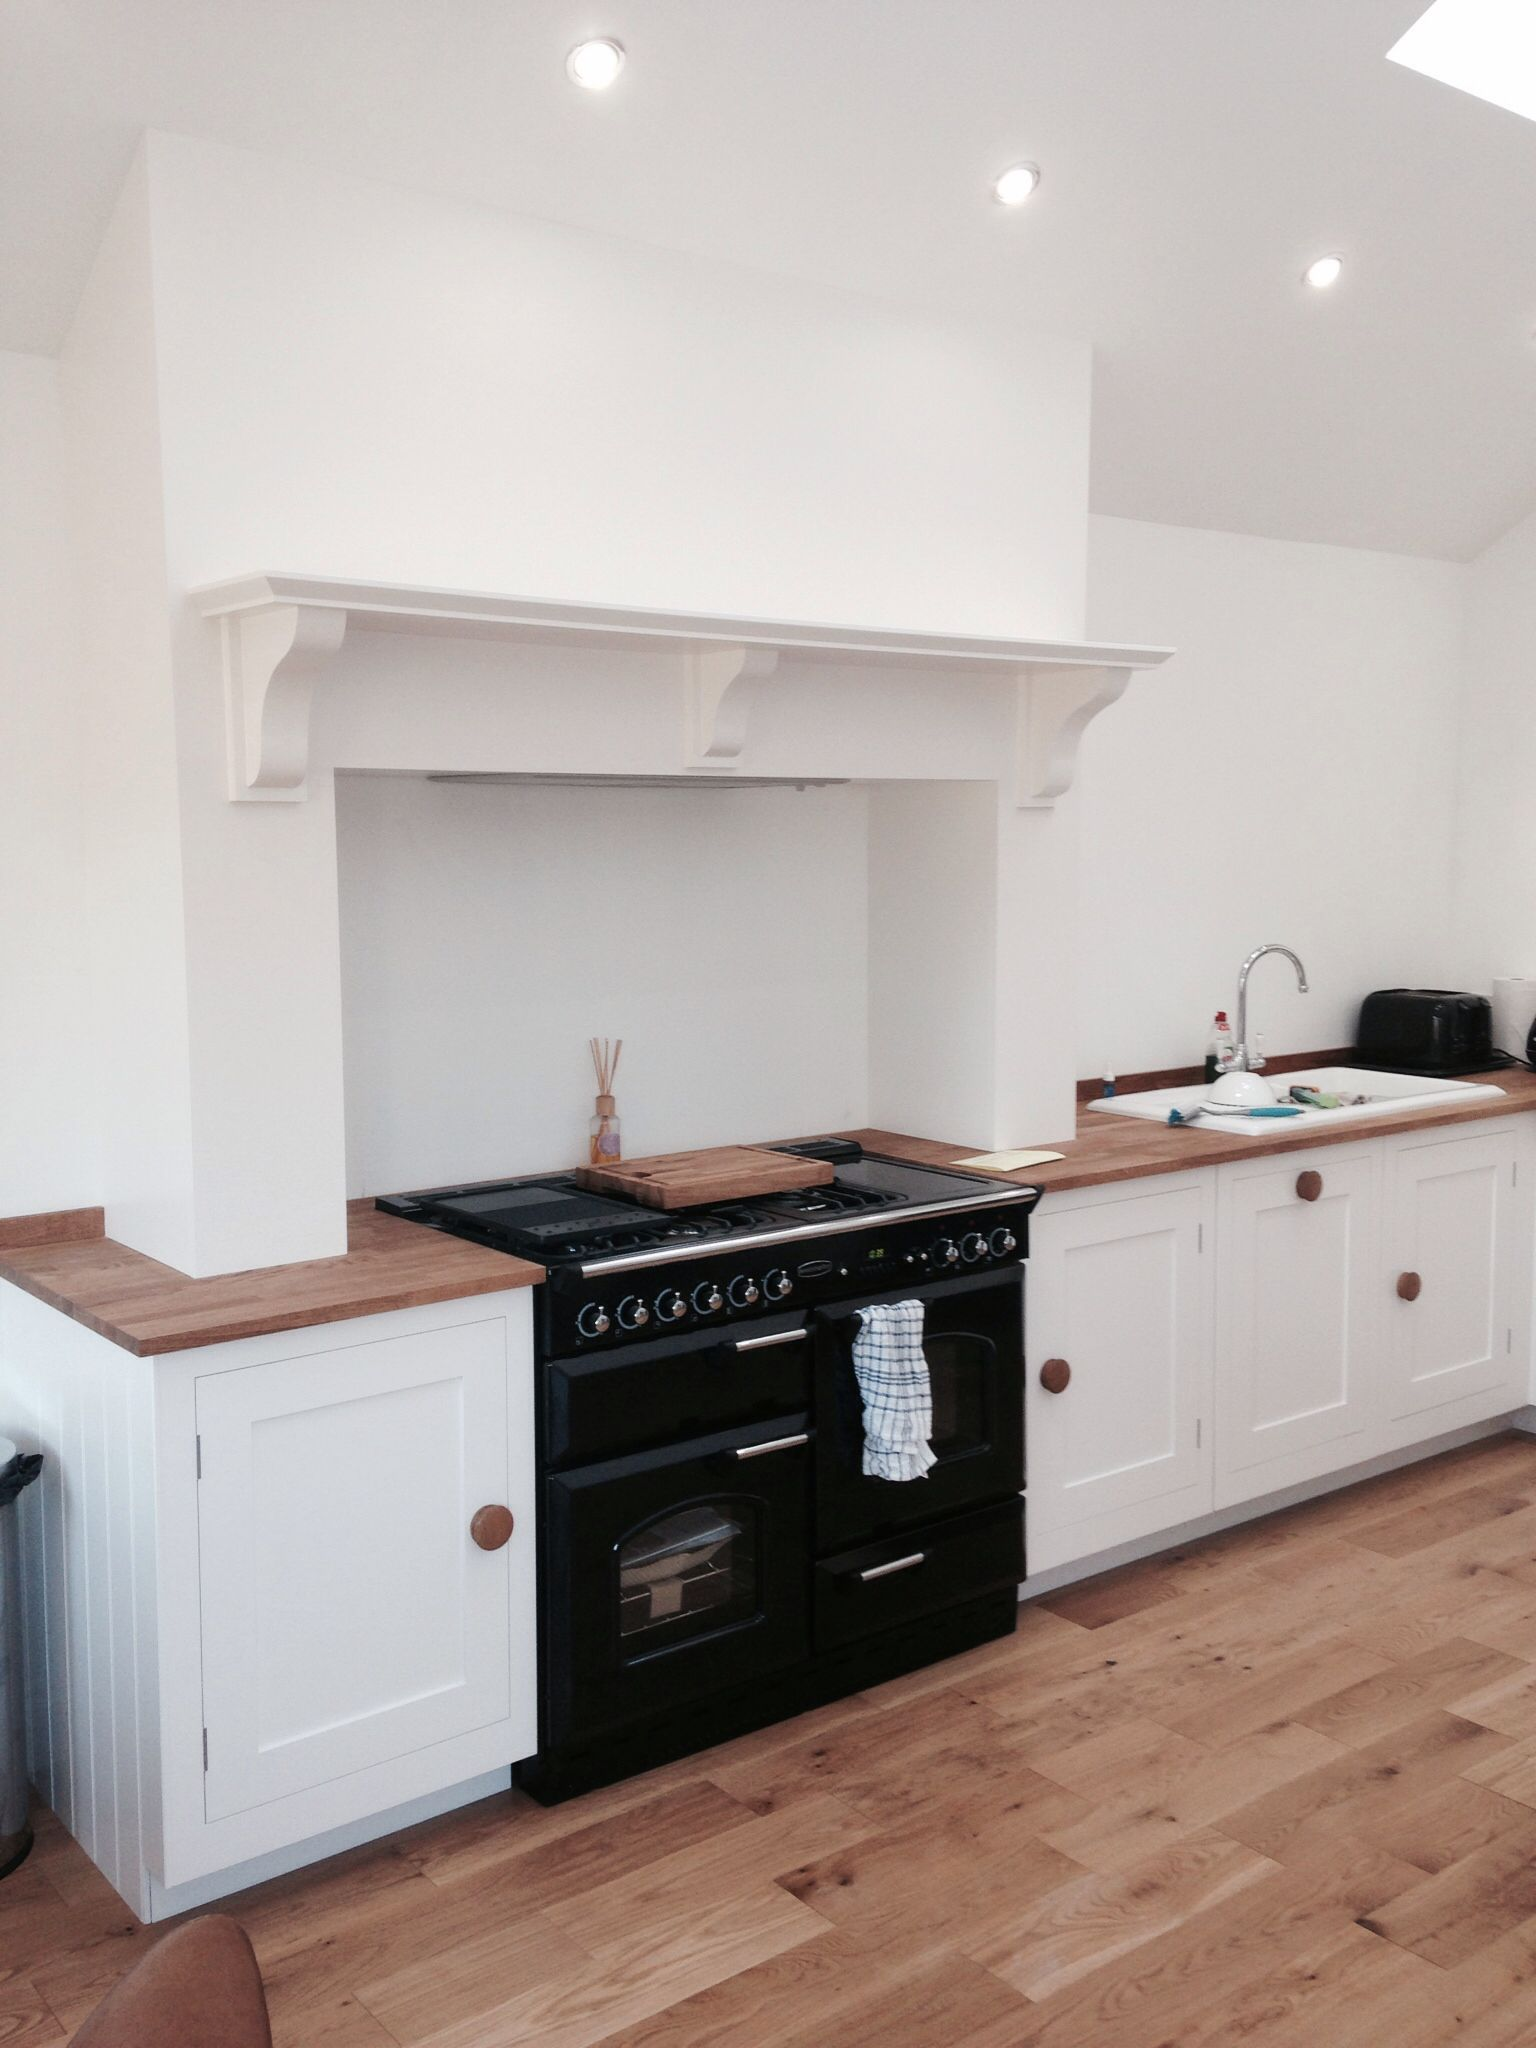 kitchen chimney breast - minimalist design. jacqui @ harvey jones